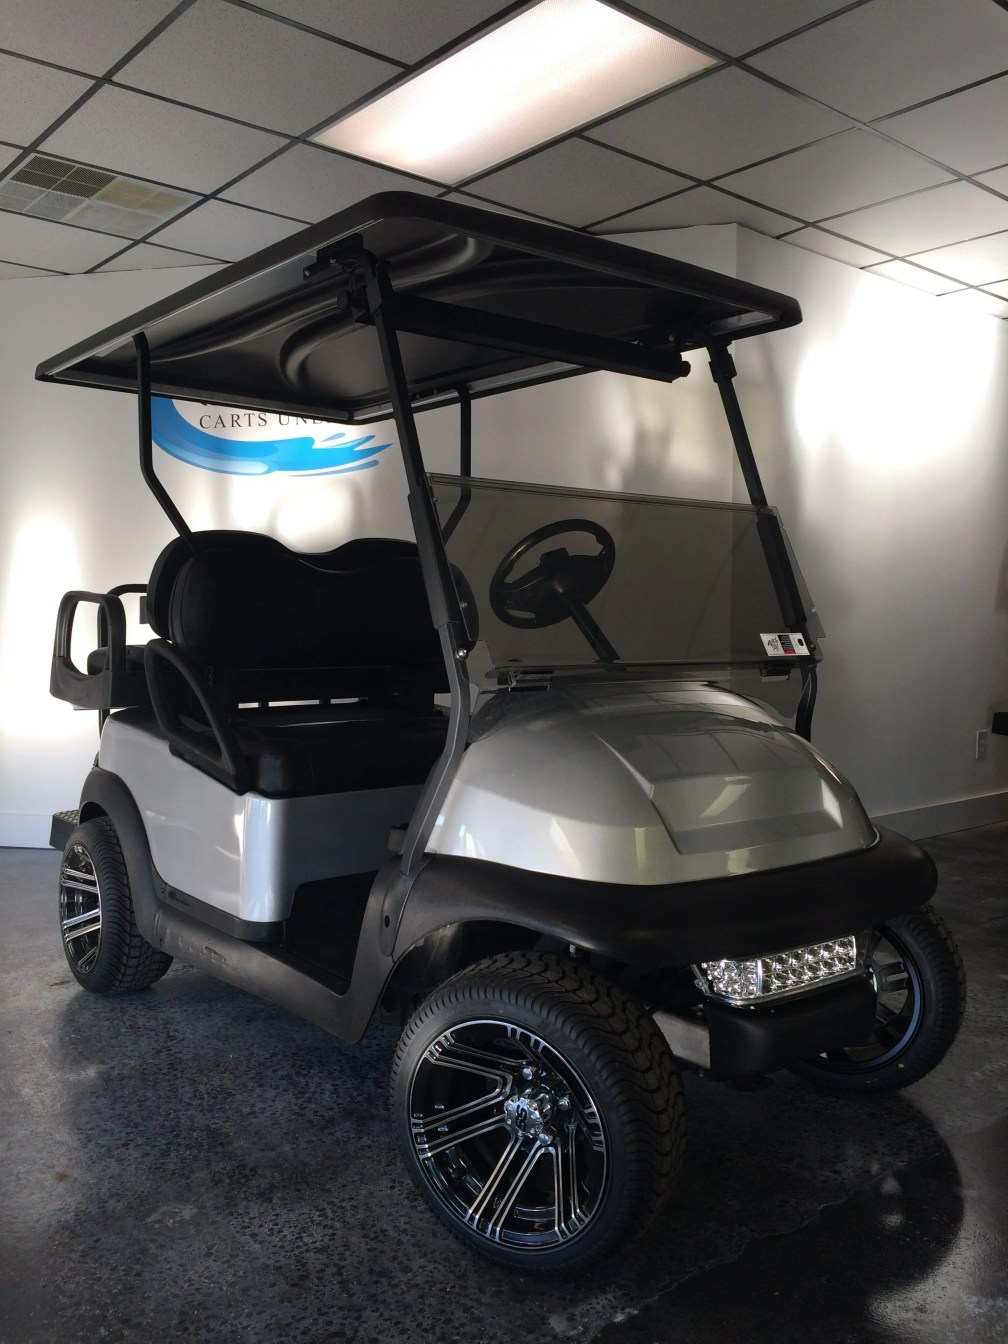 Silver Club Car-Coastal Carts Unlimited